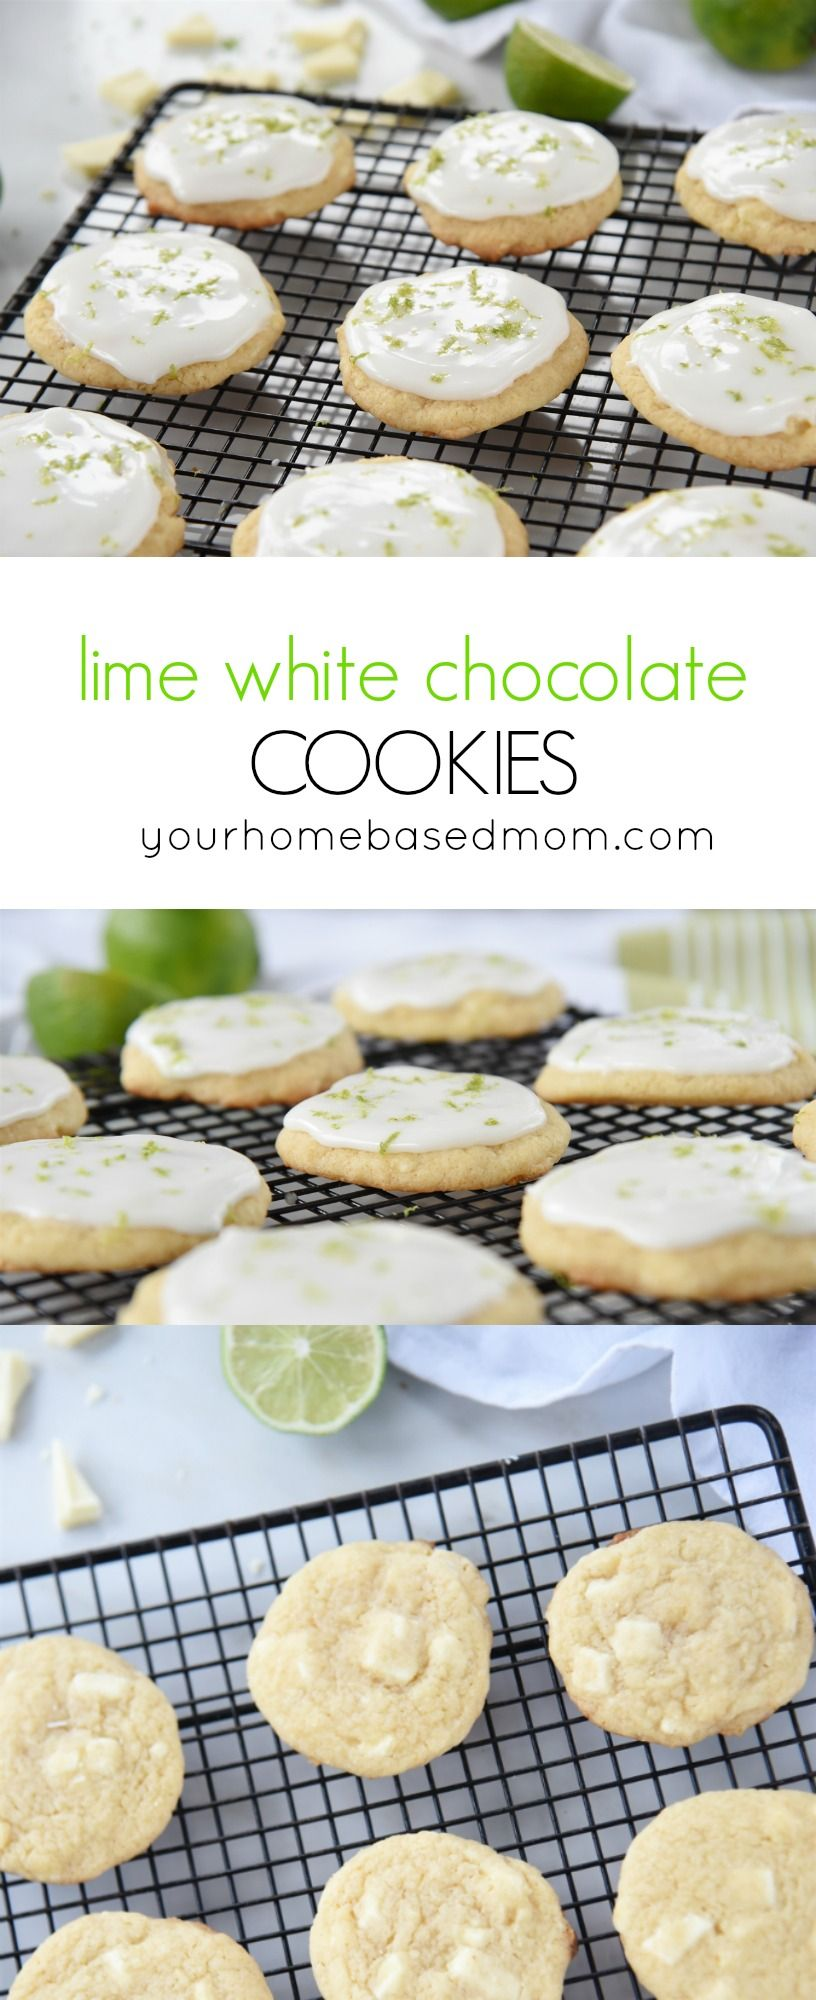 Lime White Chocolate Cookies Recipe - These are the perfect blend of flavors with white chocolate chunks and lime glaze on top.